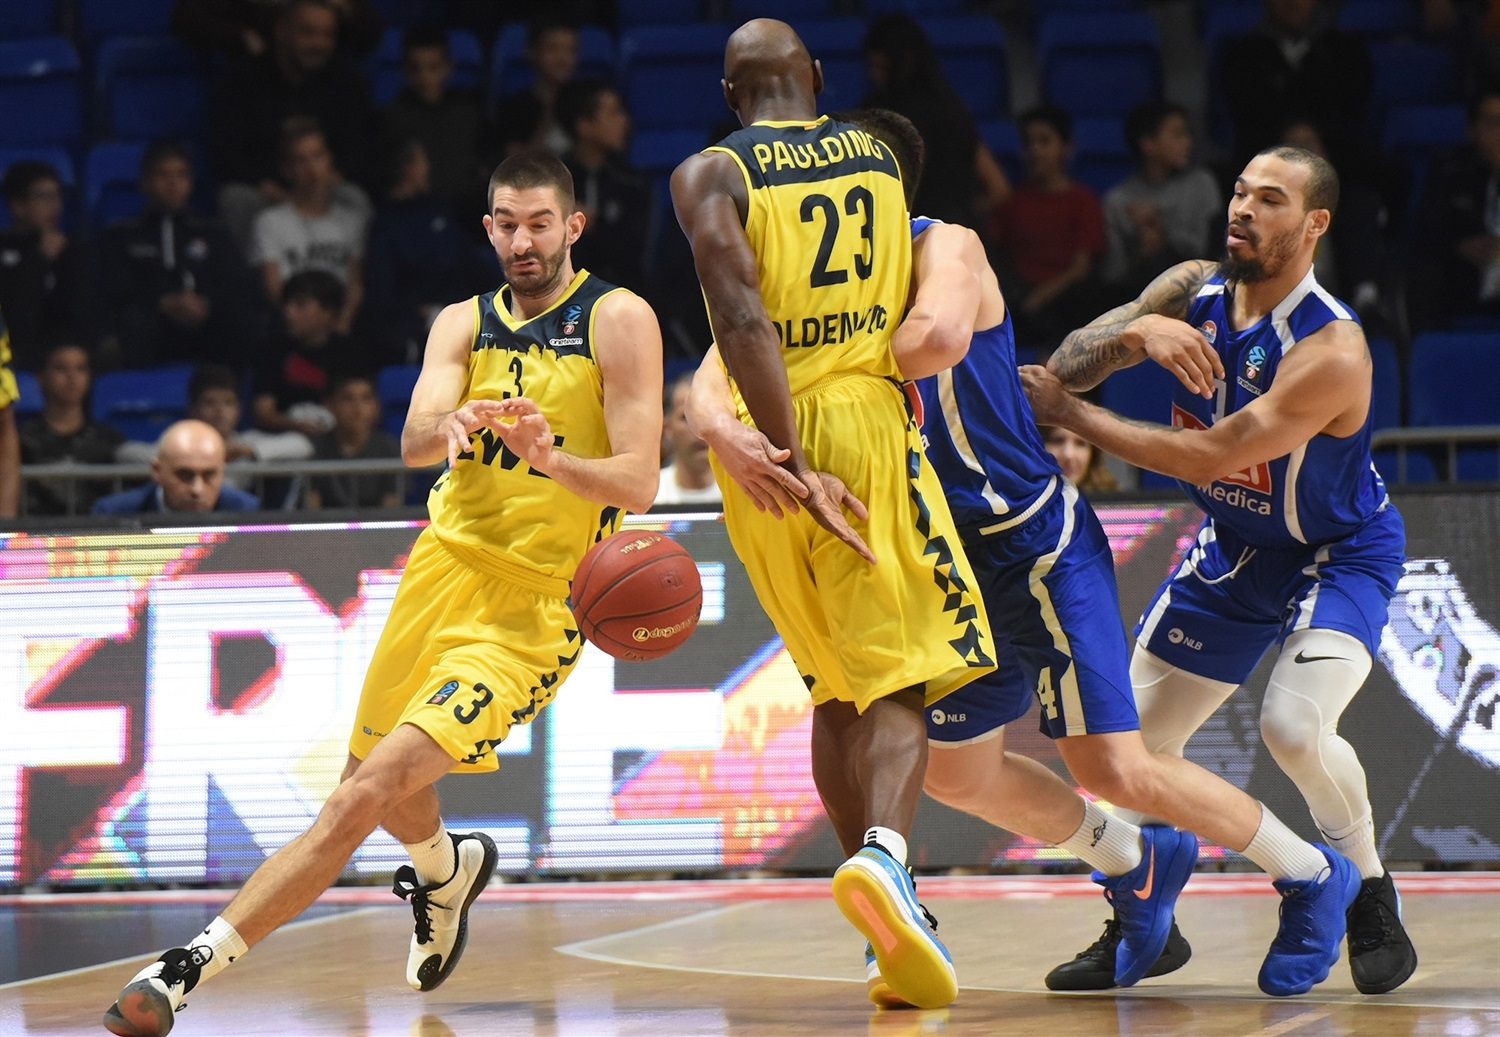 Braydon Hobbs - EWE Baskets Oldenburg (photo Buducnost) - EC19